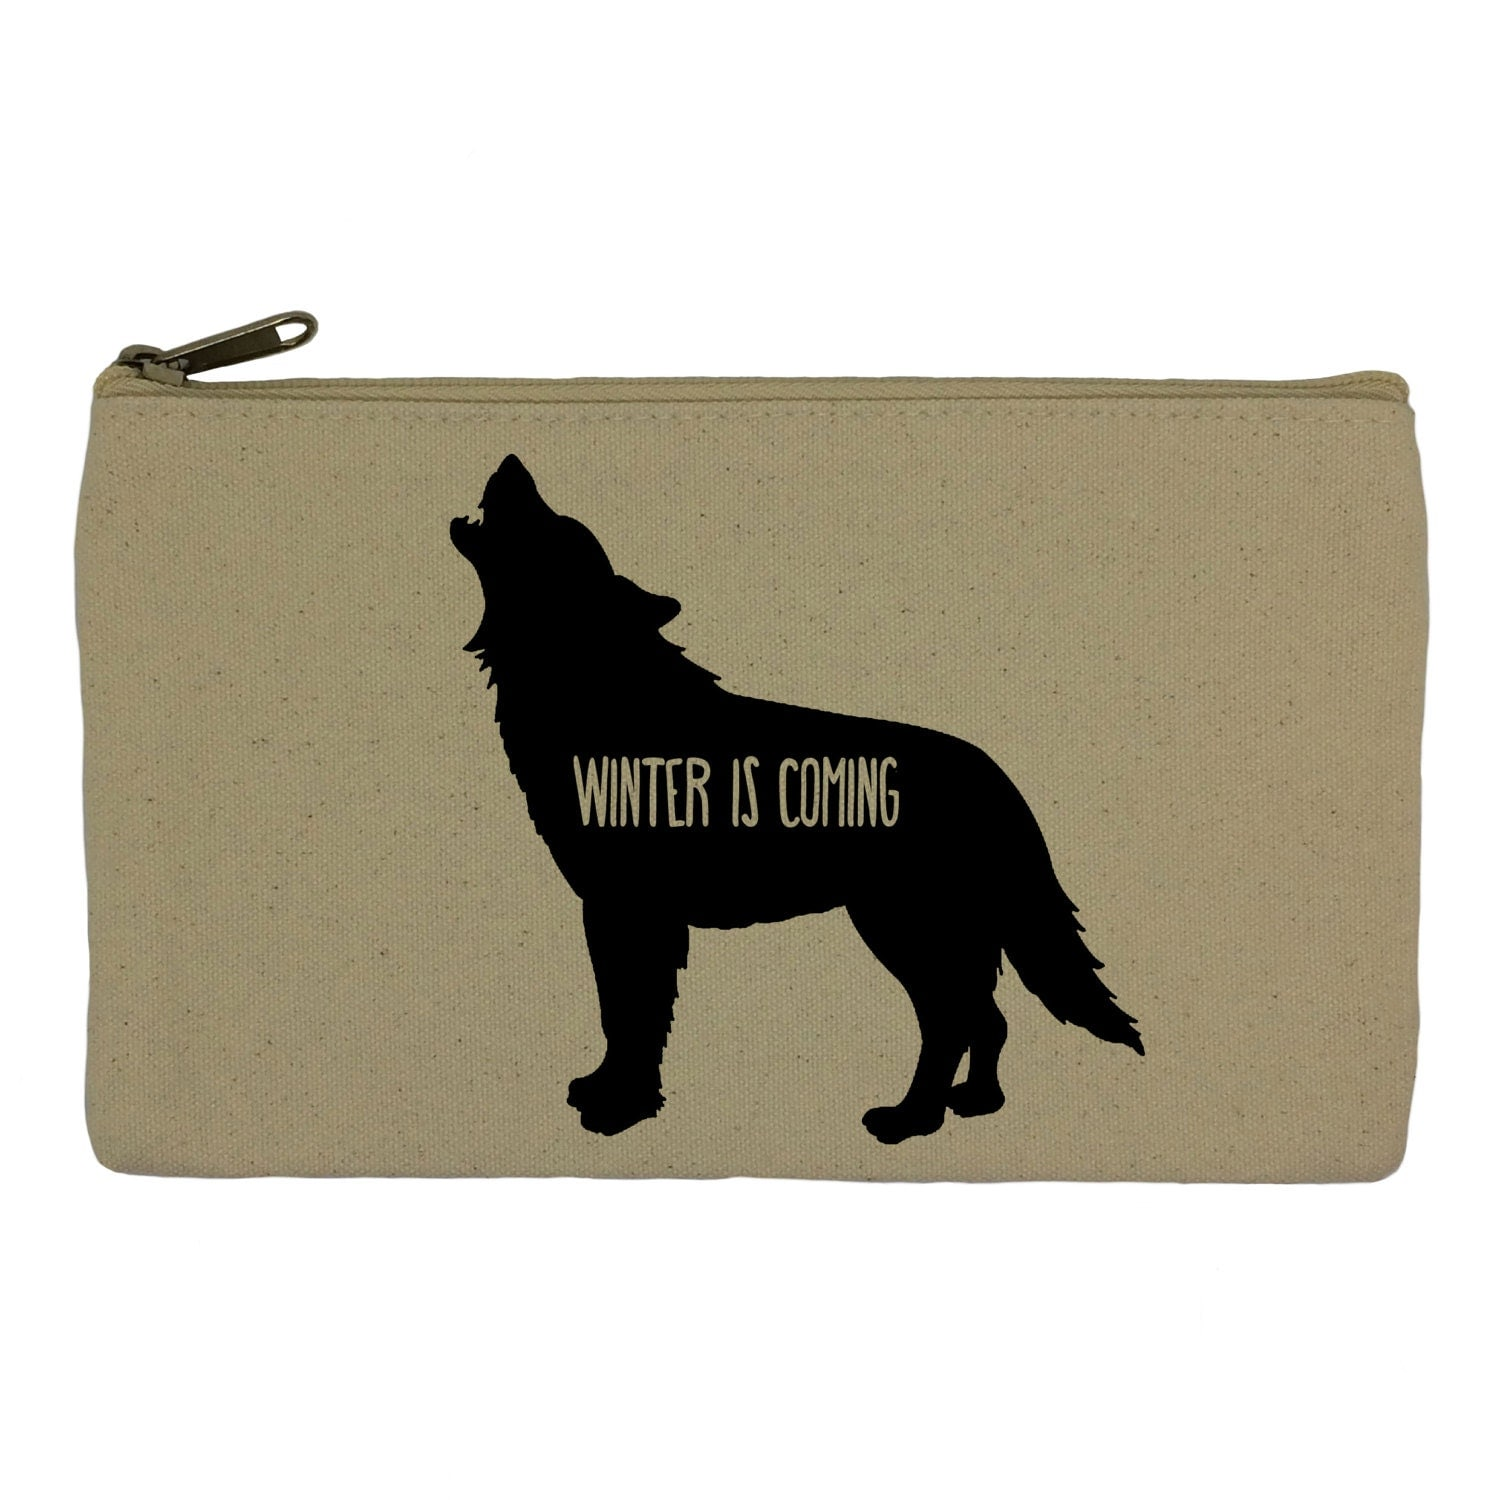 Pencil case stationary winter is coming game of thrones pencil pouch canvas bag pencil holder make up bag school supplies